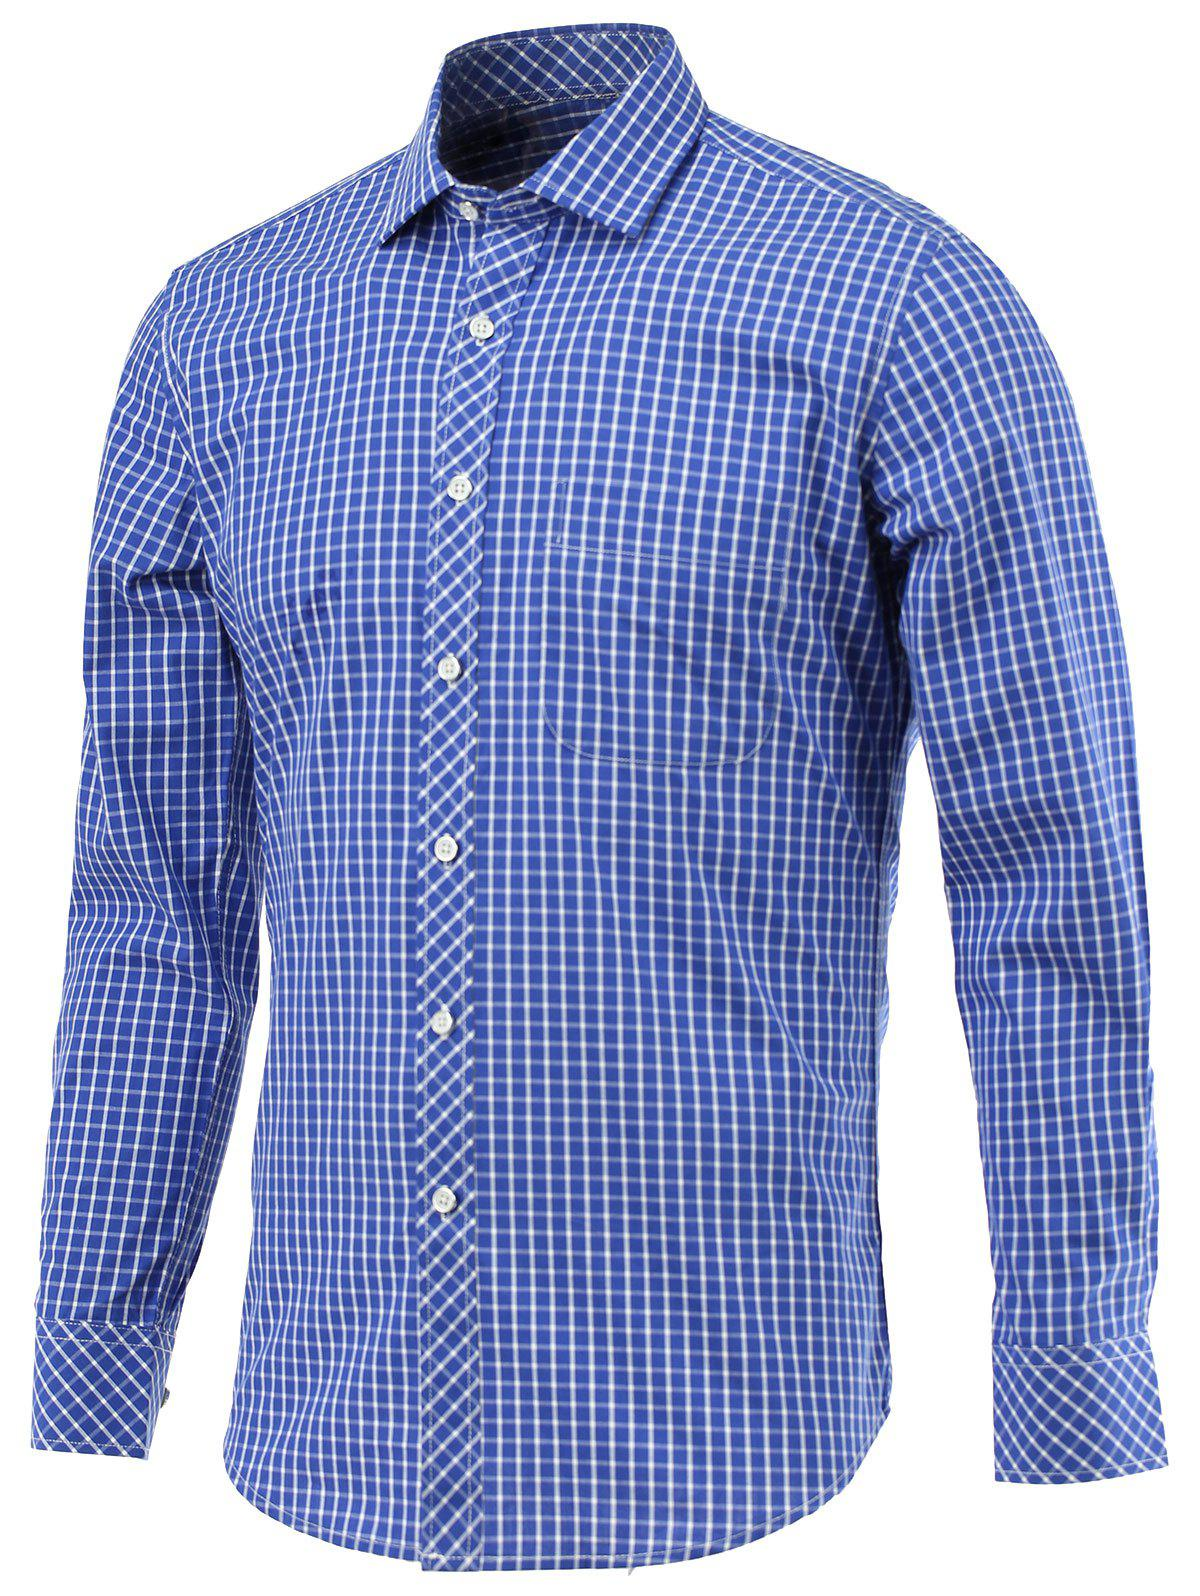 Small Grid Pocket Embellished Turn-Down Collar Long Sleeve Shirt - BLUE 5XL